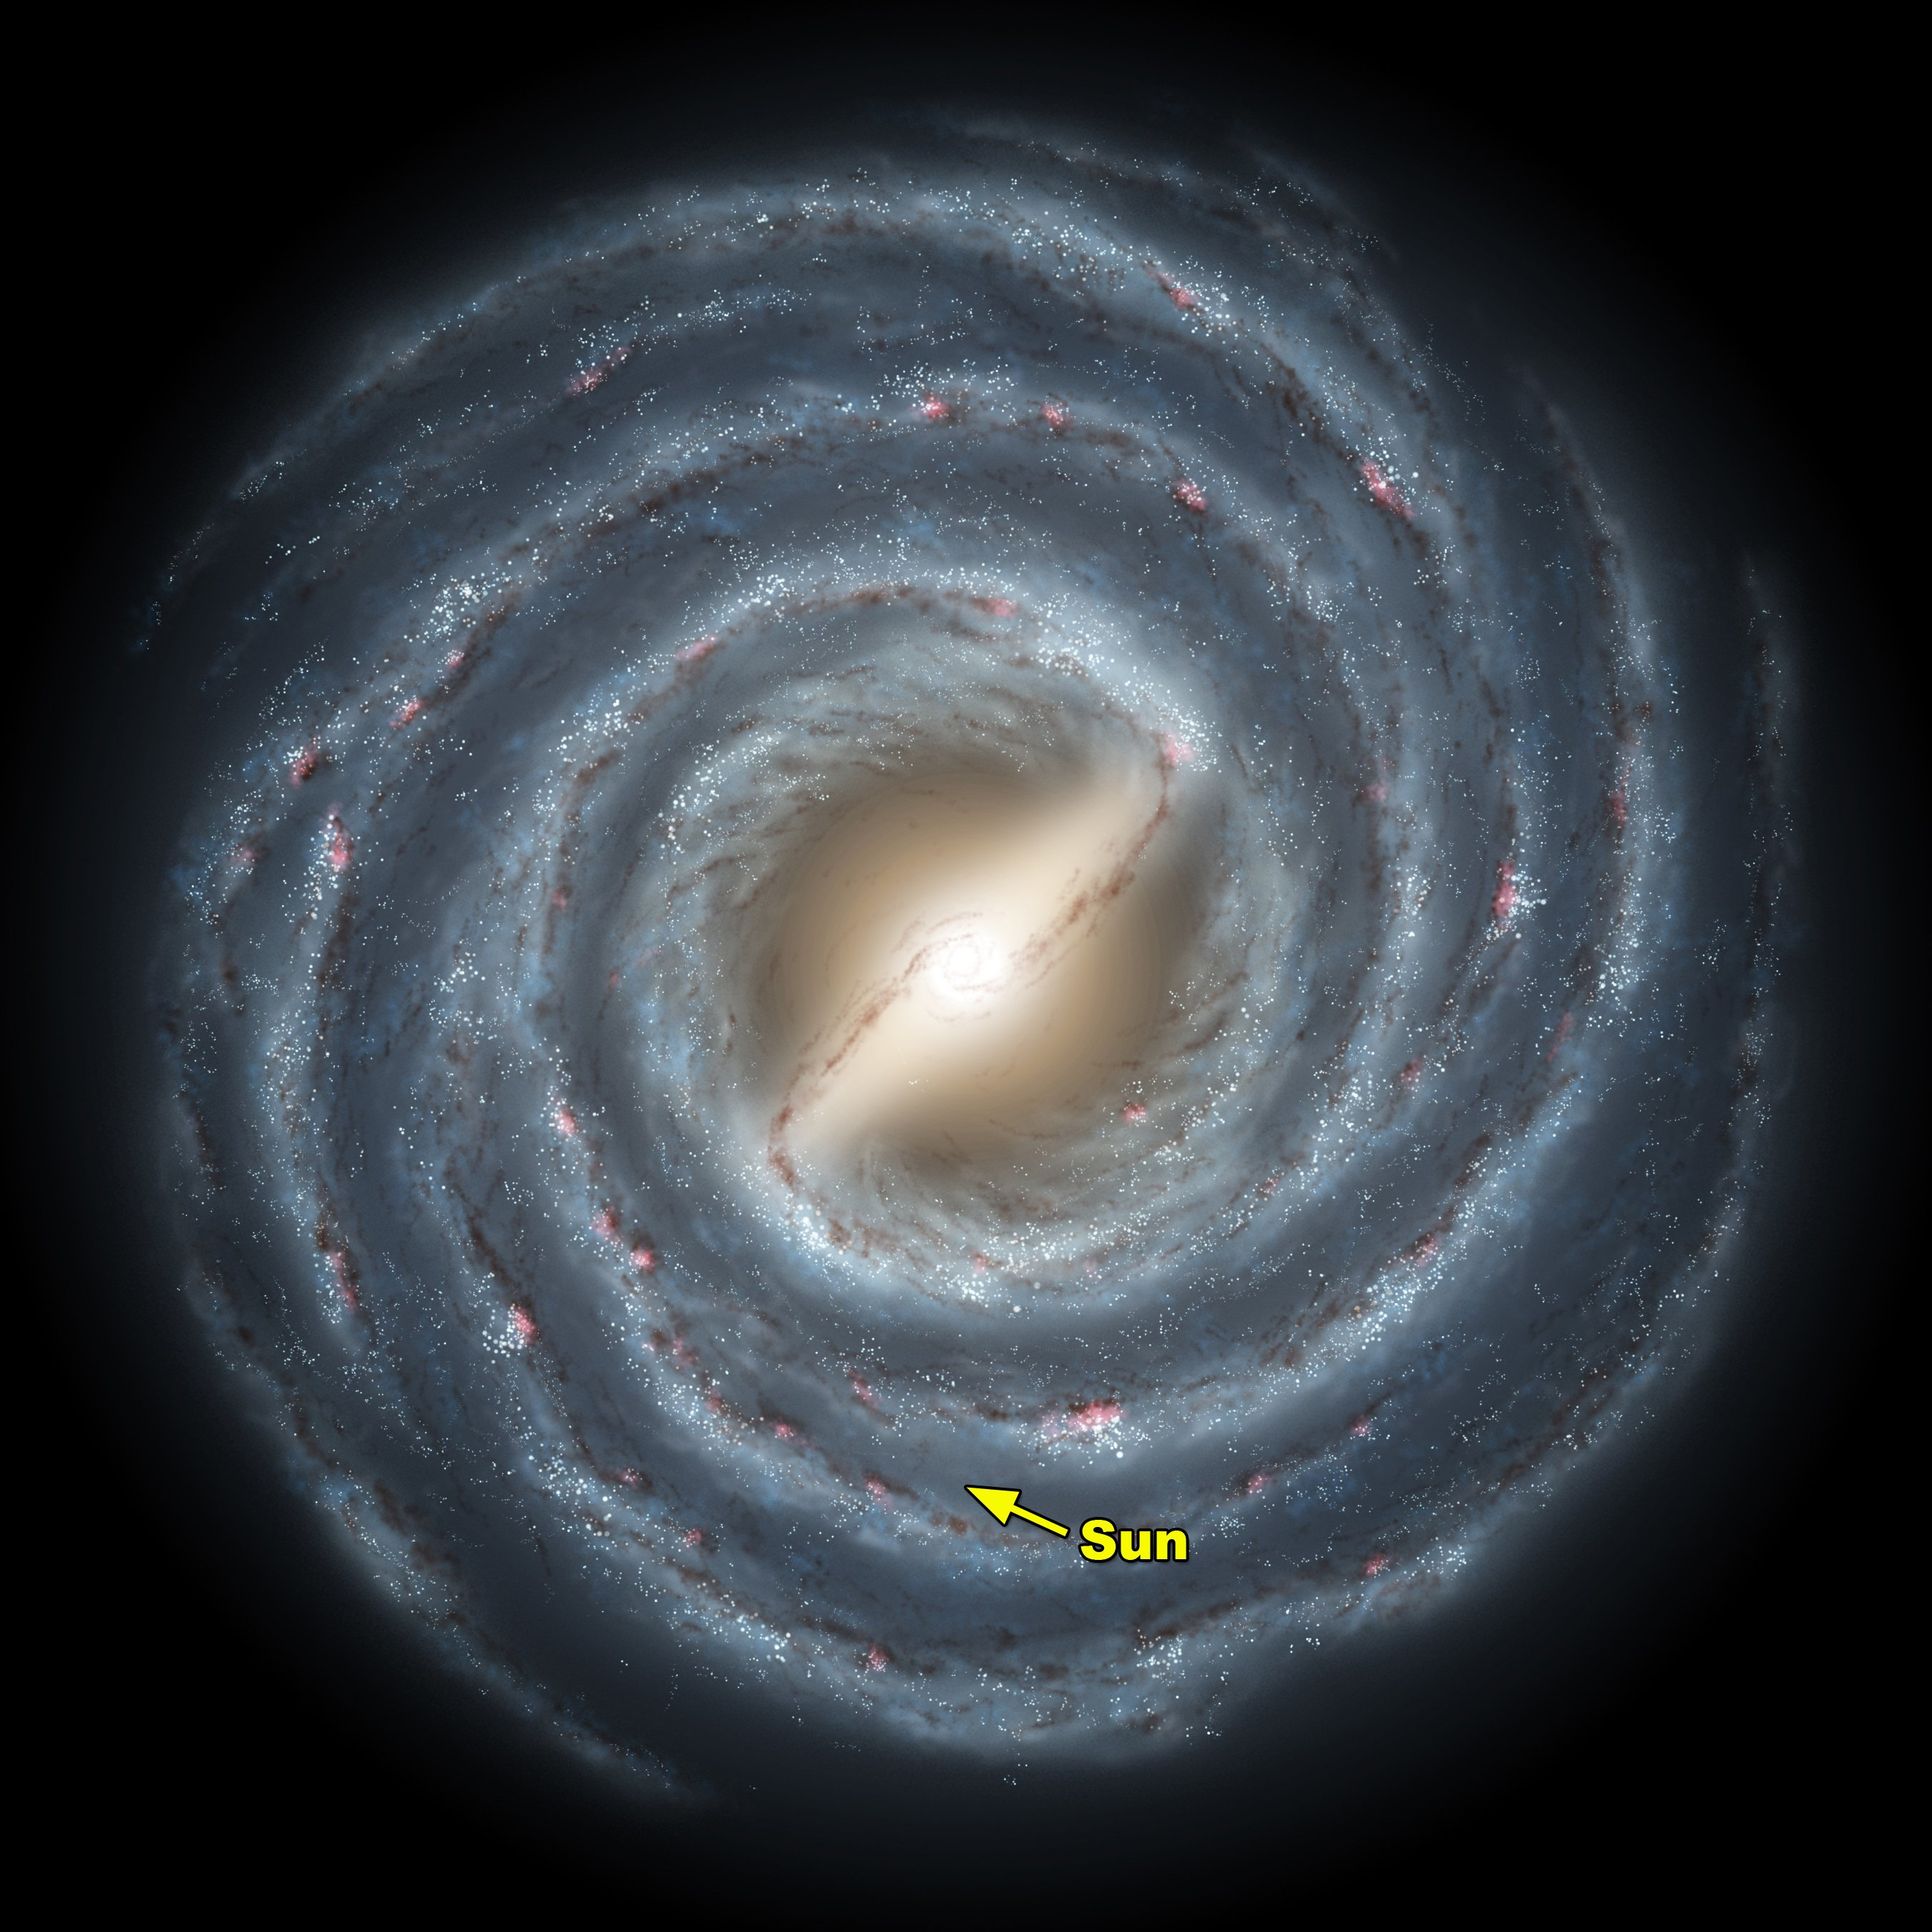 An artist's impression illustrating the position of the Sun and our solar system within the Milky Way.